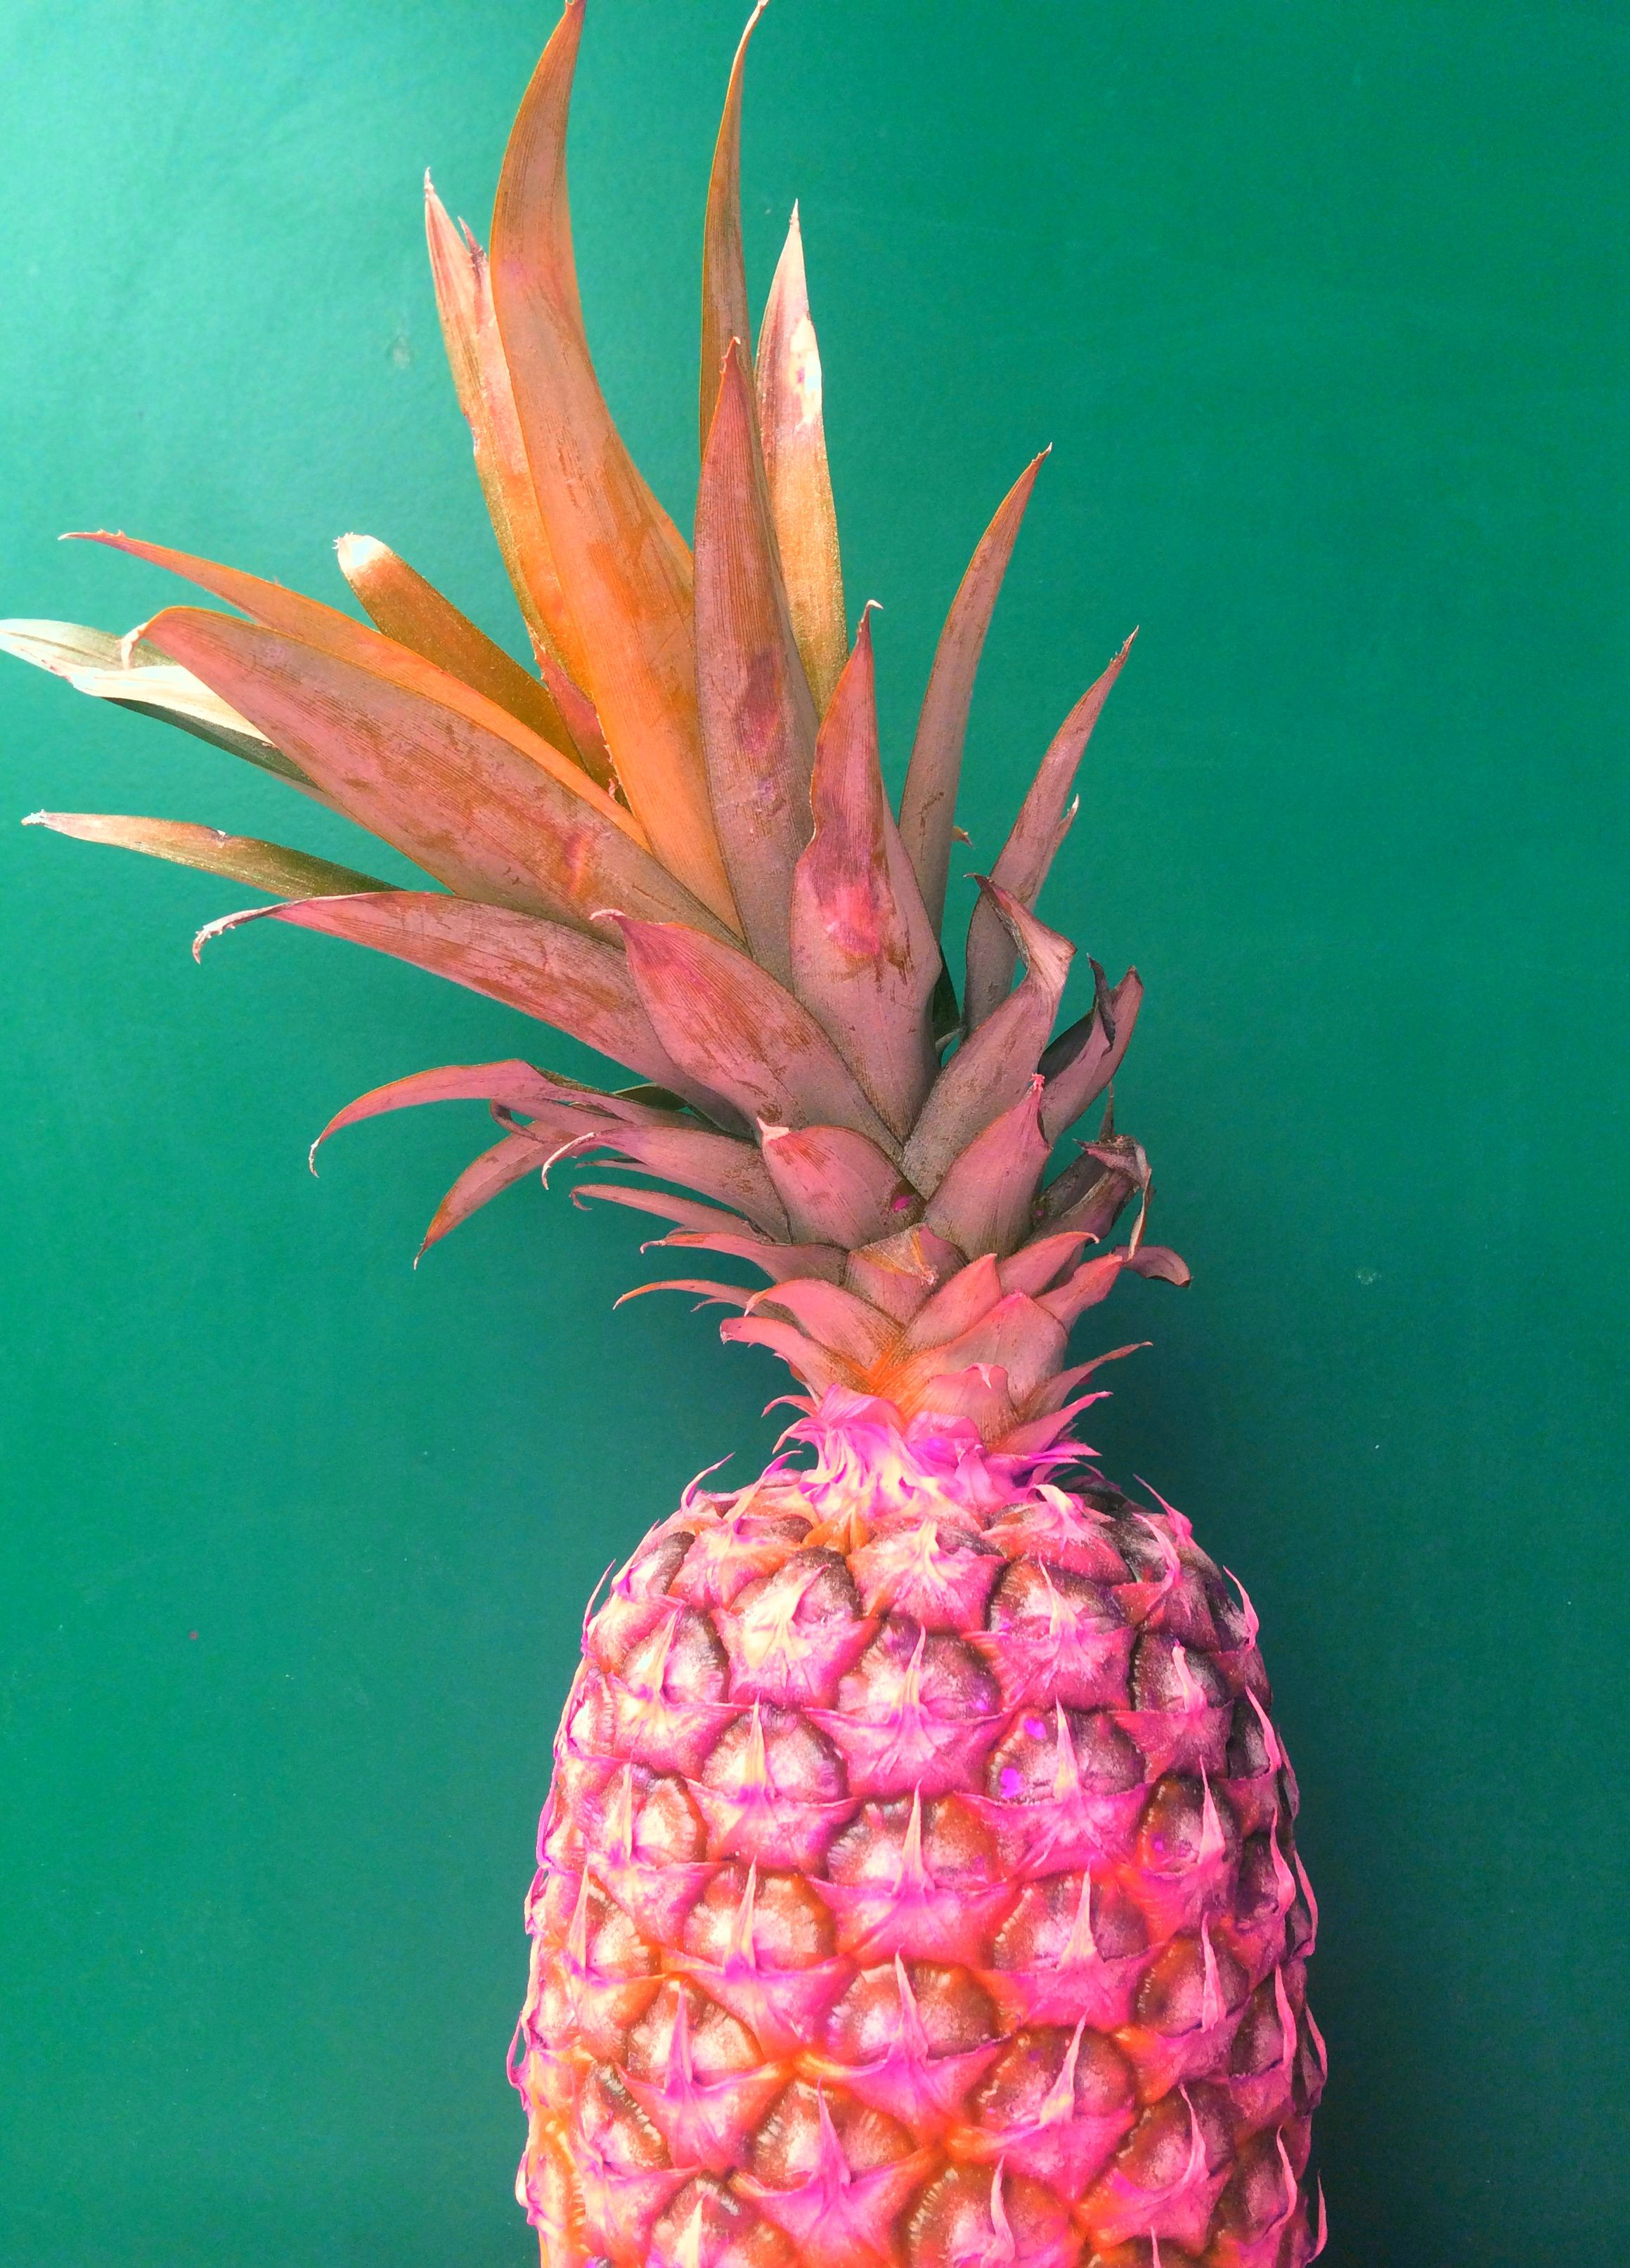 pineapple is the king! (With images) | Pineapple, Cute ...